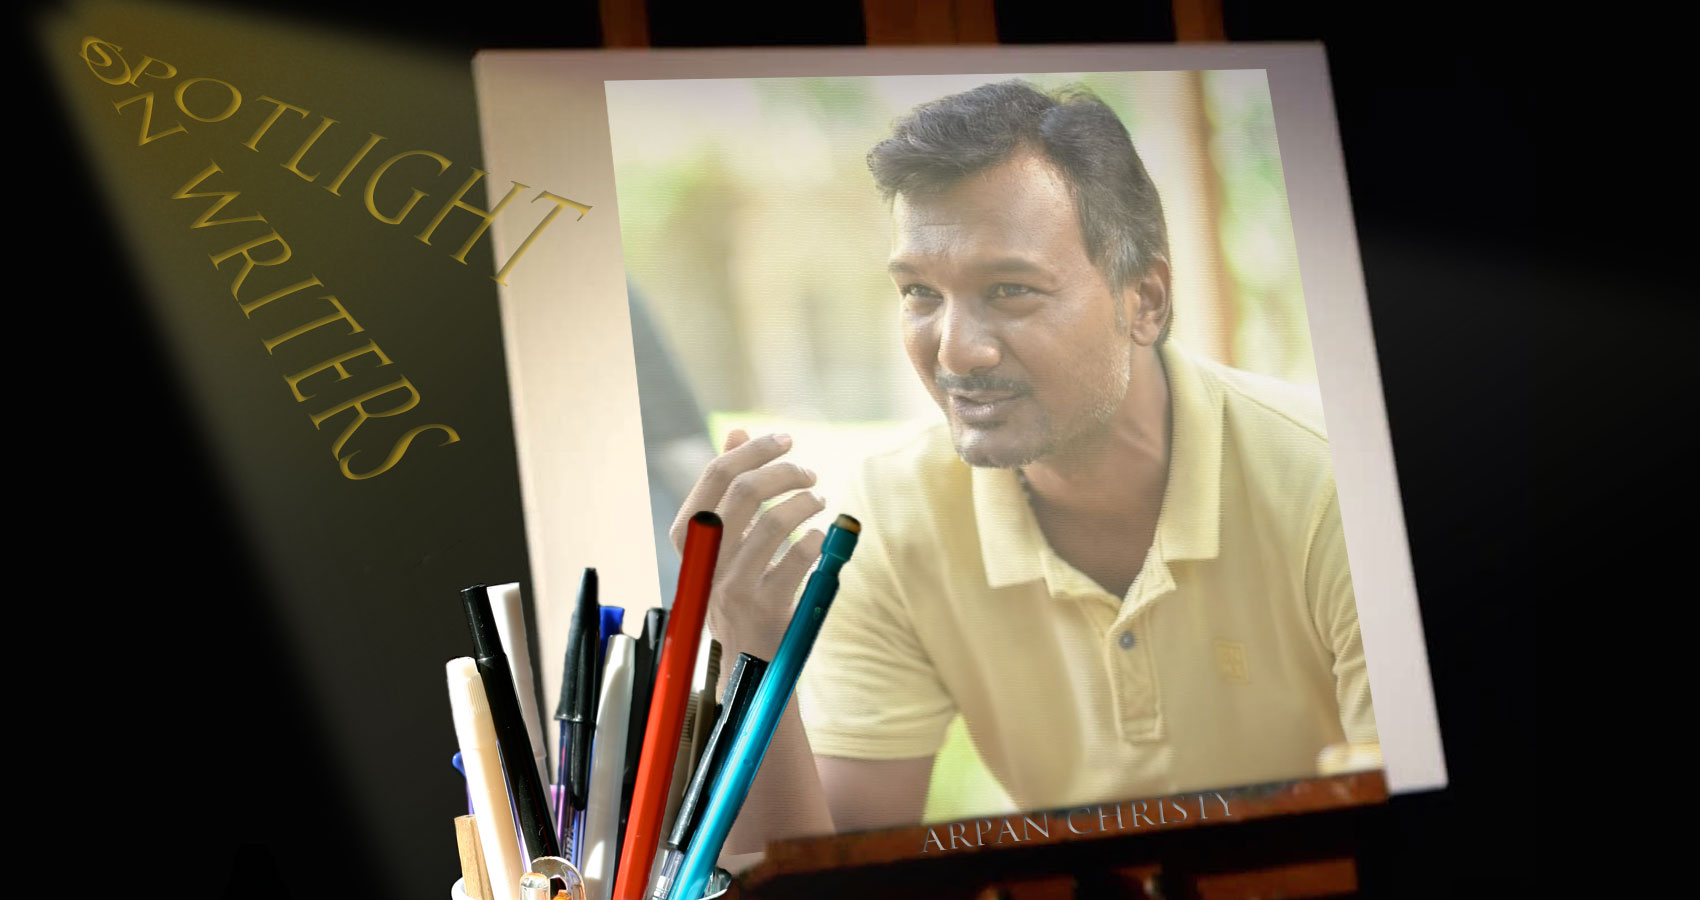 Spotlight On Writers - Arpan Christy, interview at Spillwords.com